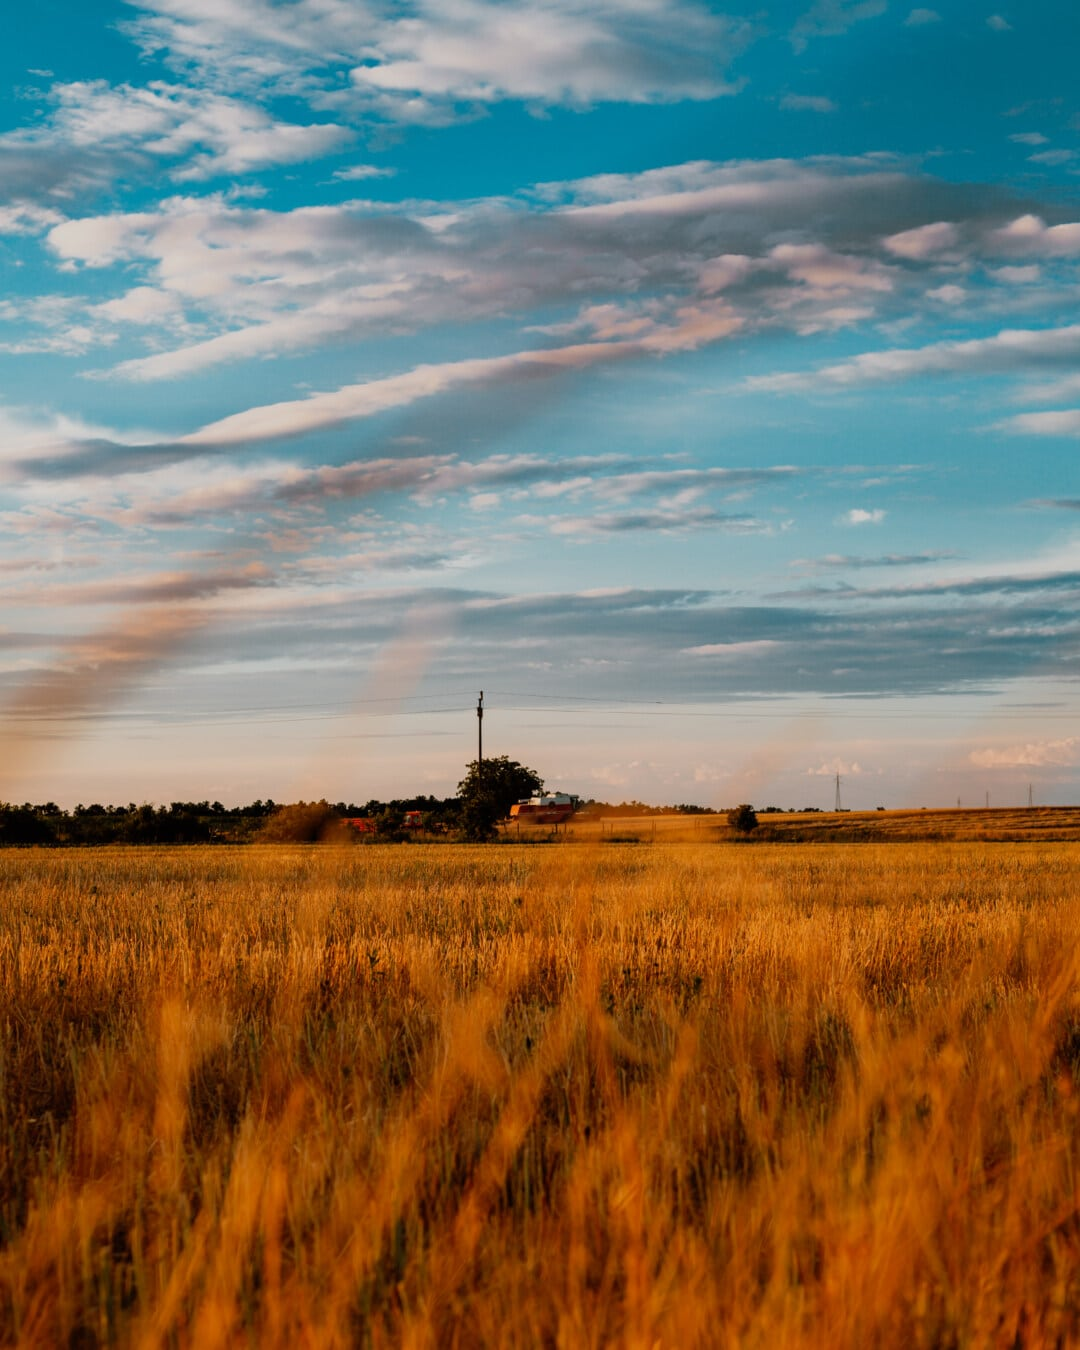 grassy, wheatfield, wheat, idyllic, afternoon, rural, landscape, countryside, sunset, agriculture